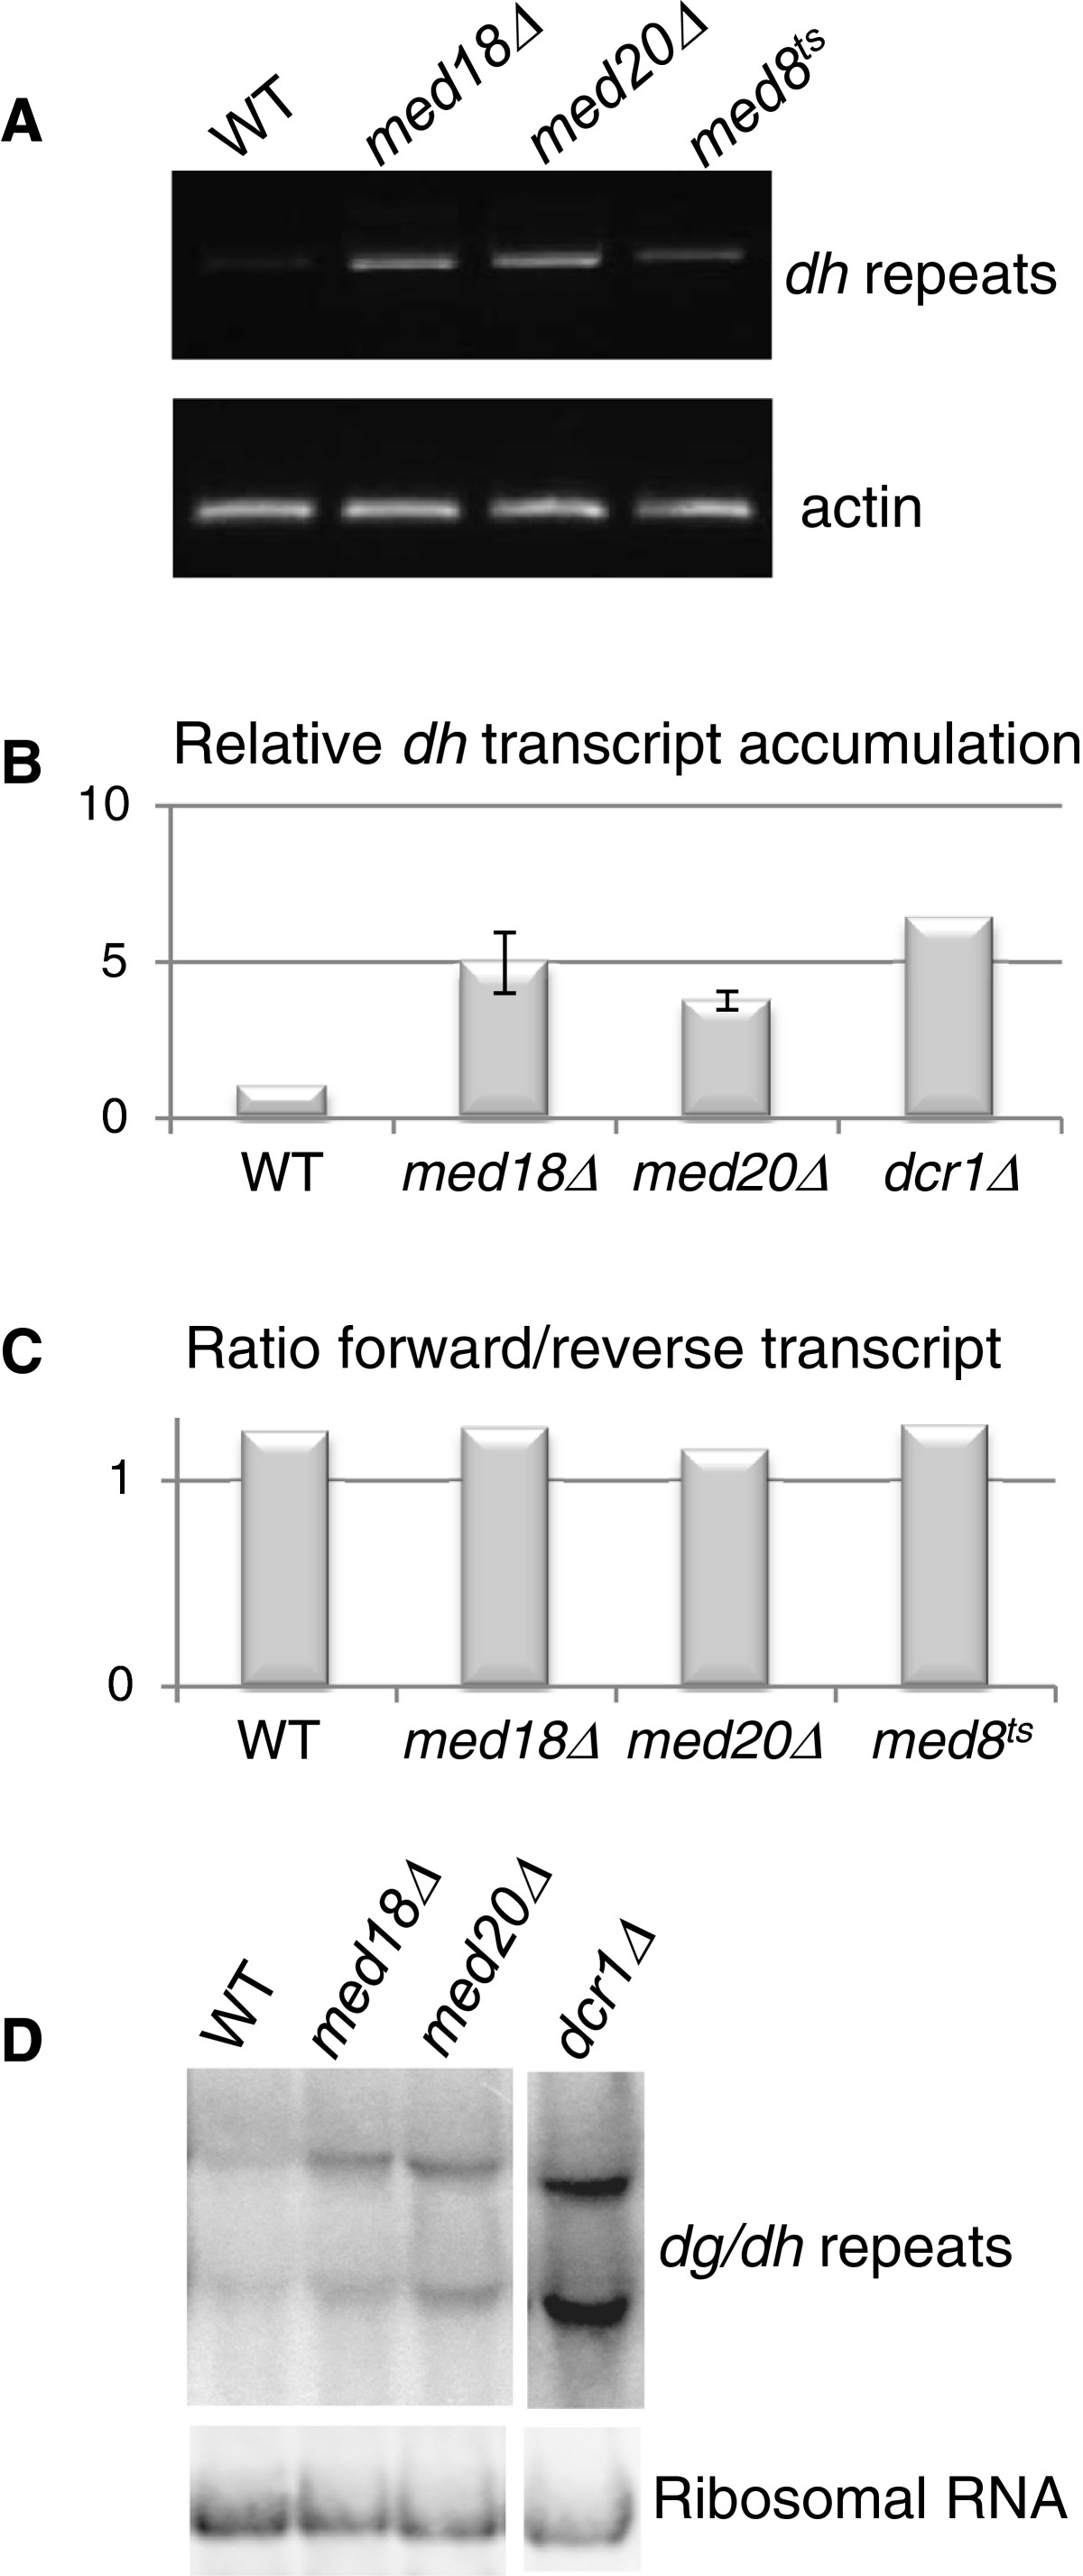 http://static-content.springer.com/image/art%3A10.1186%2F1756-8935-5-19/MediaObjects/13072_2012_Article_90_Fig2_HTML.jpg